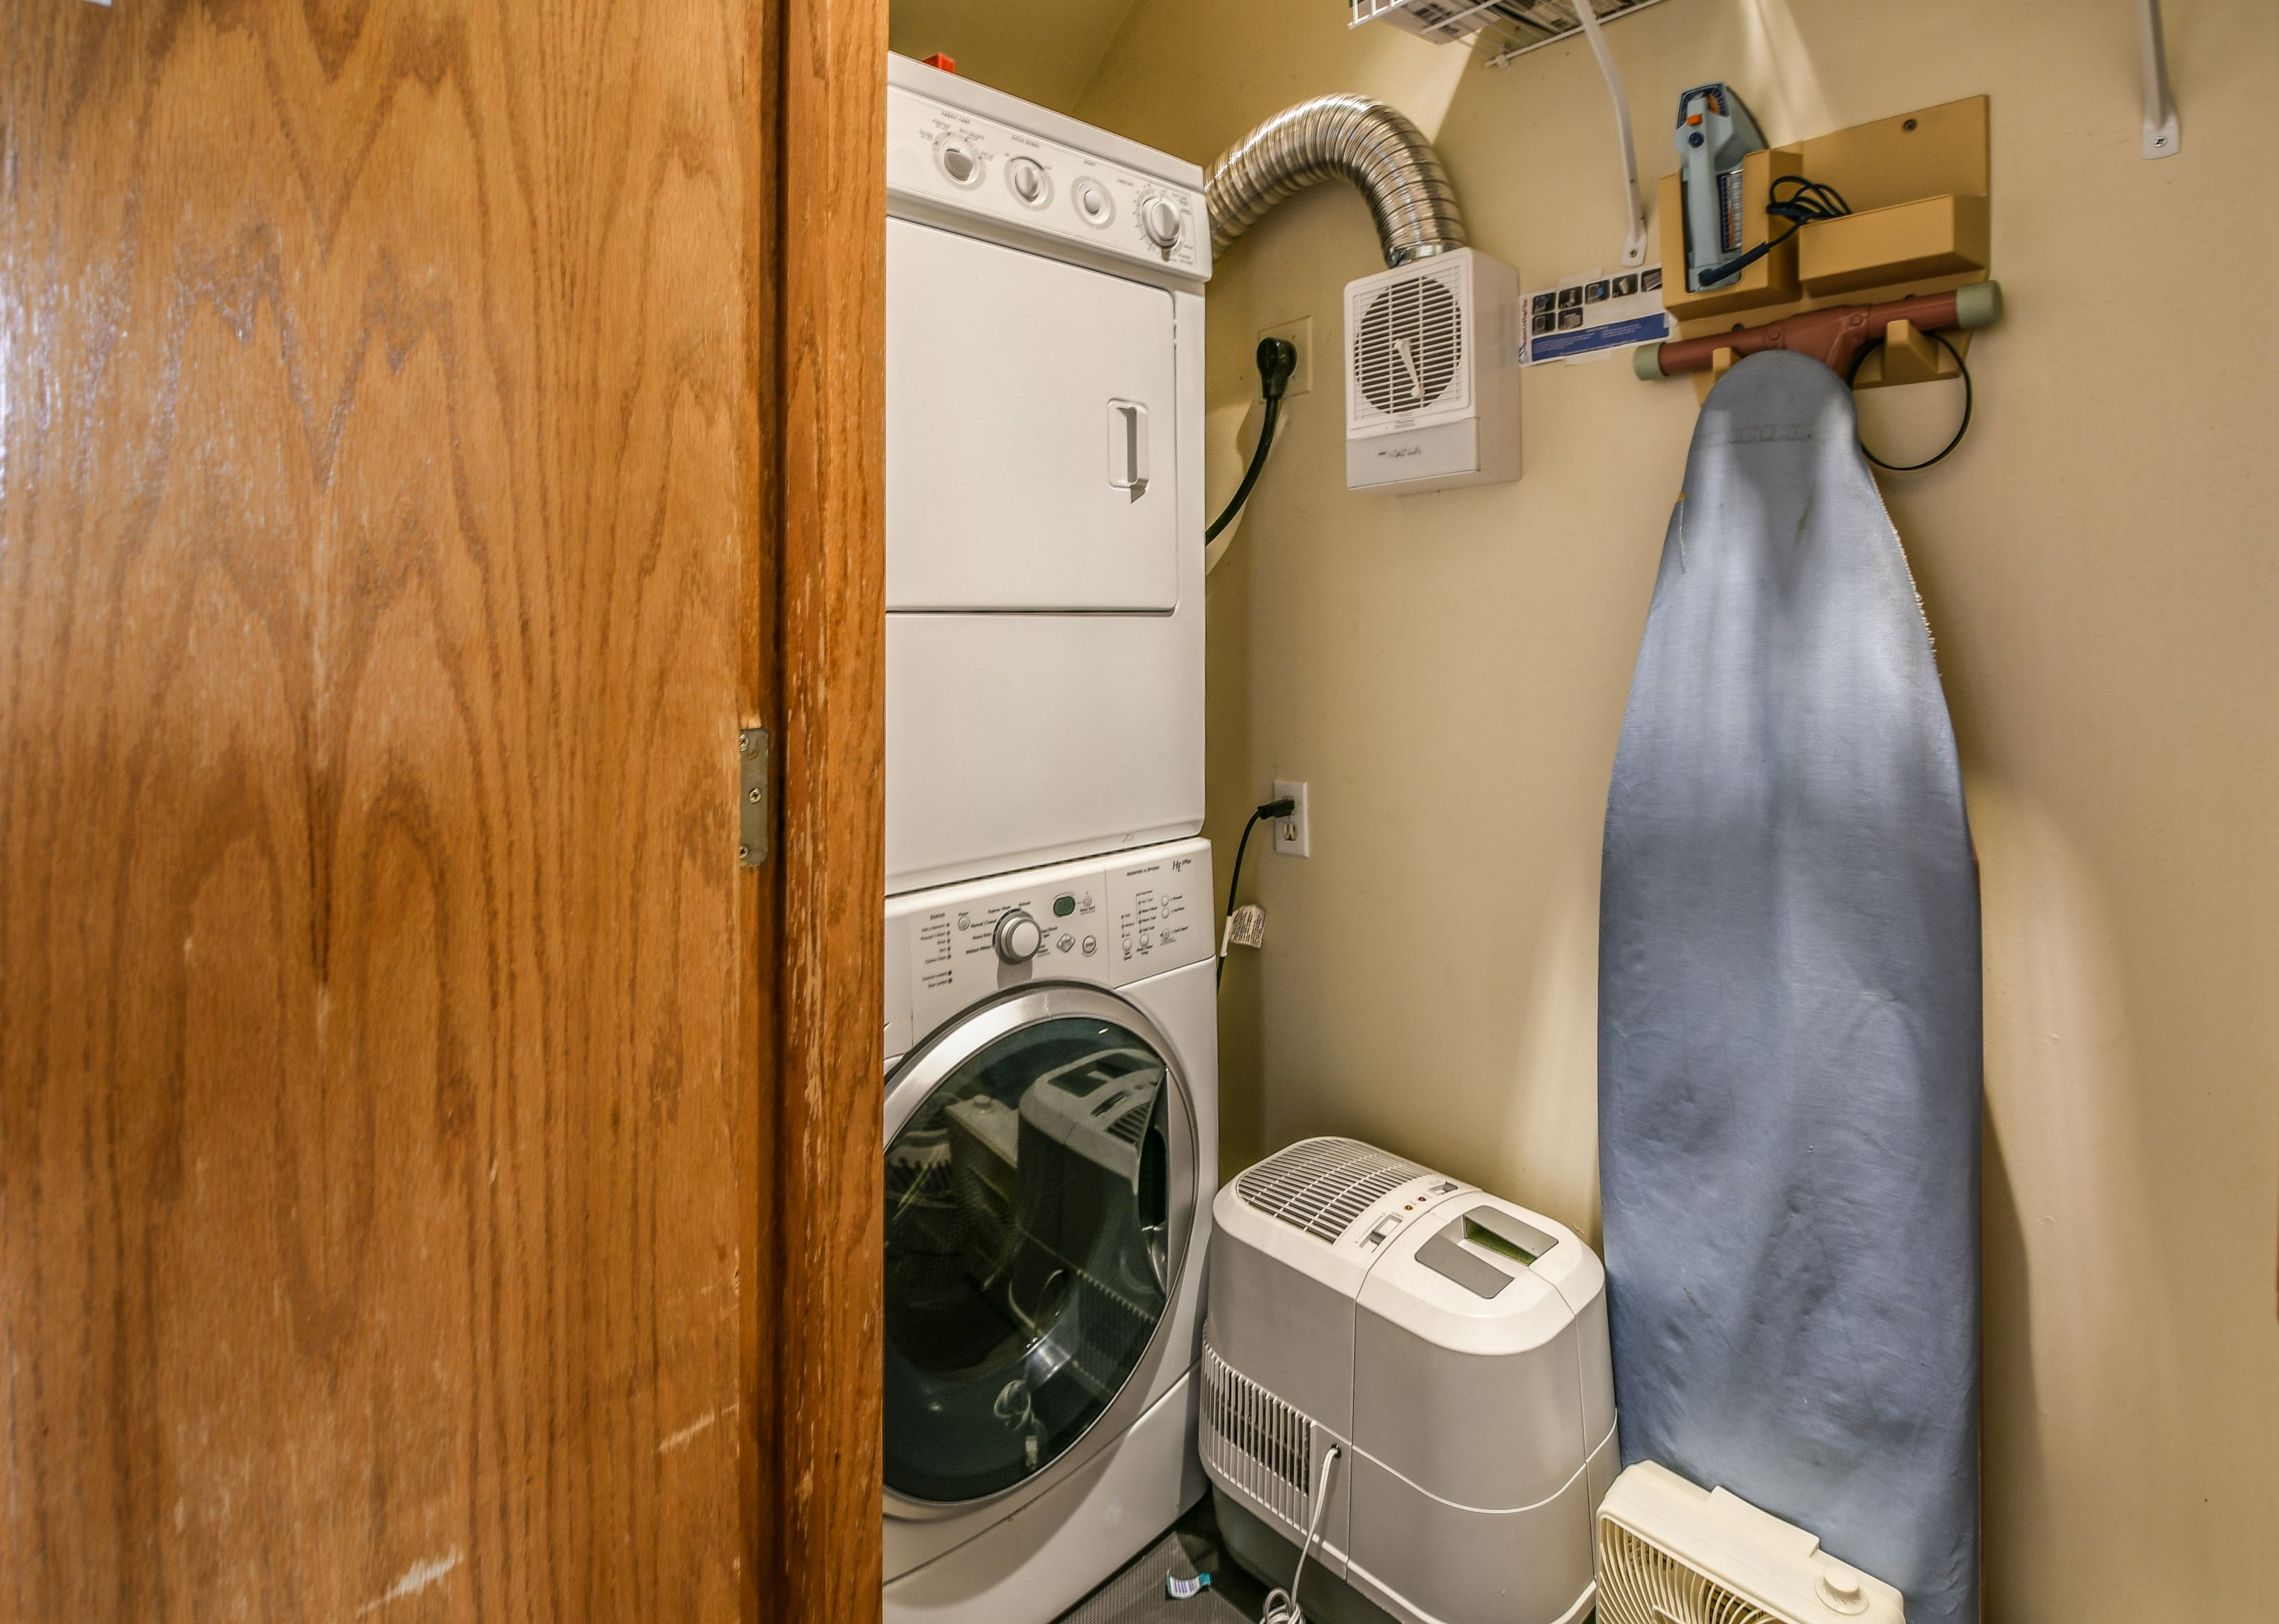 Room to wash clothes and store all needed things